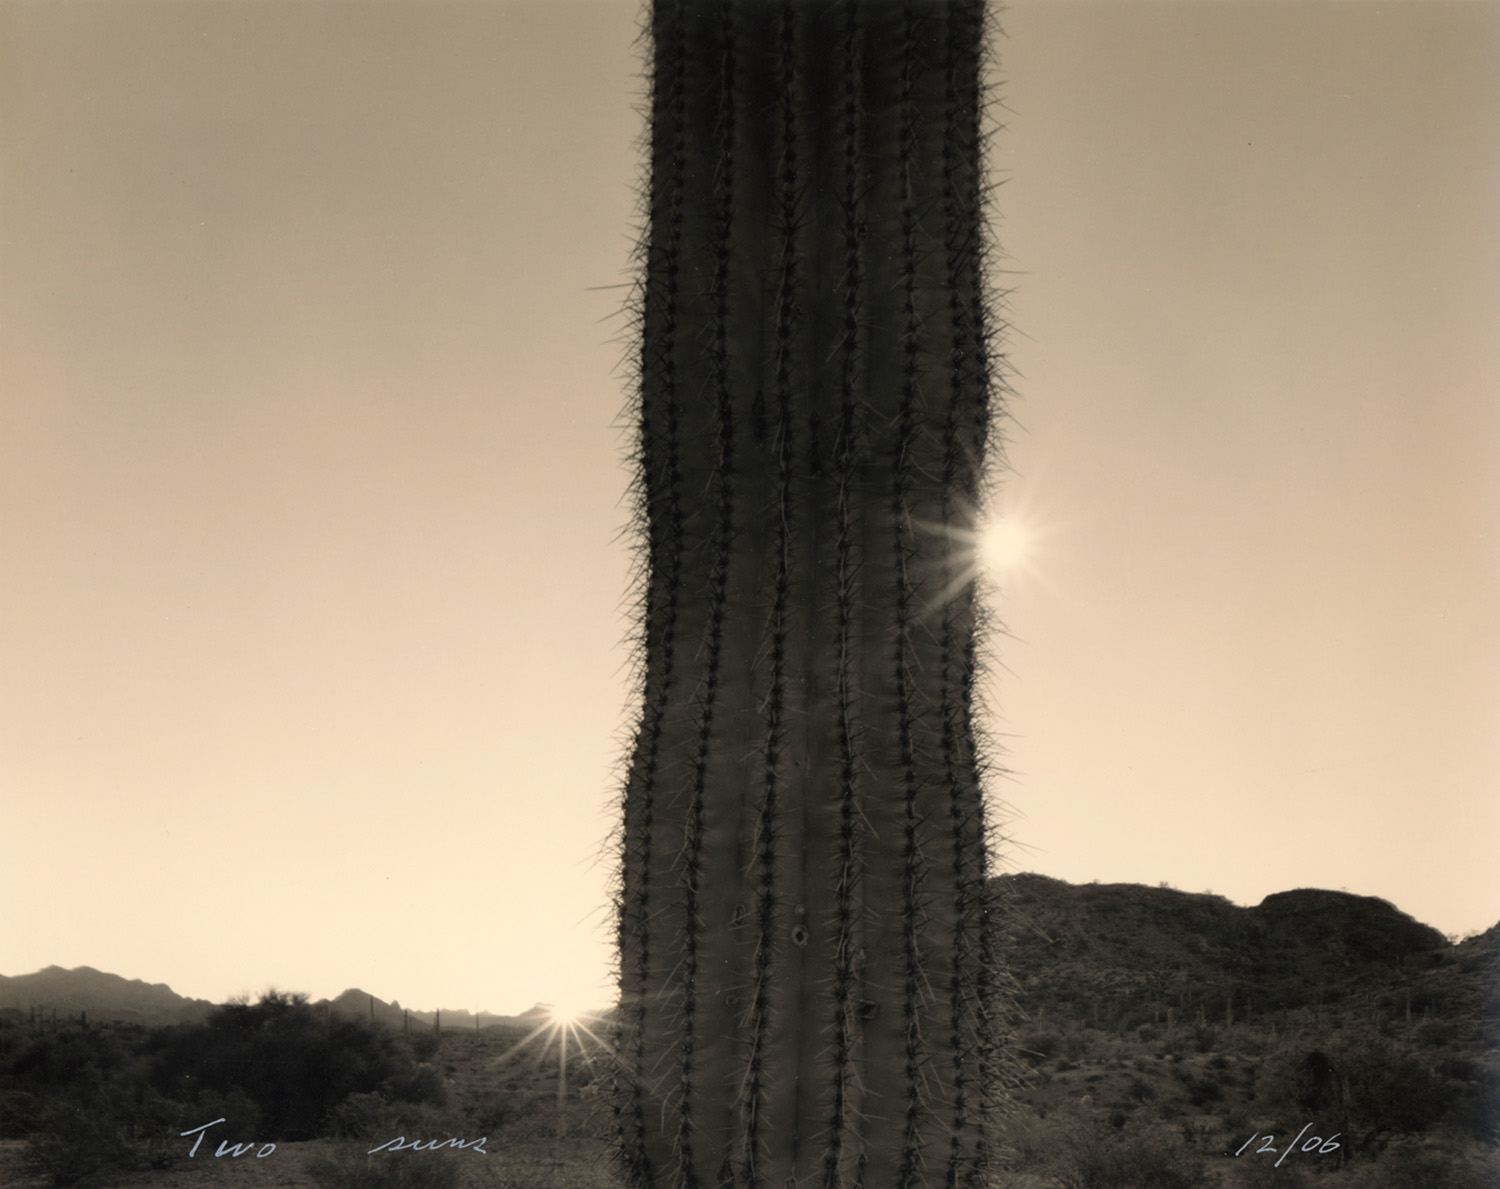 Two suns, 2006